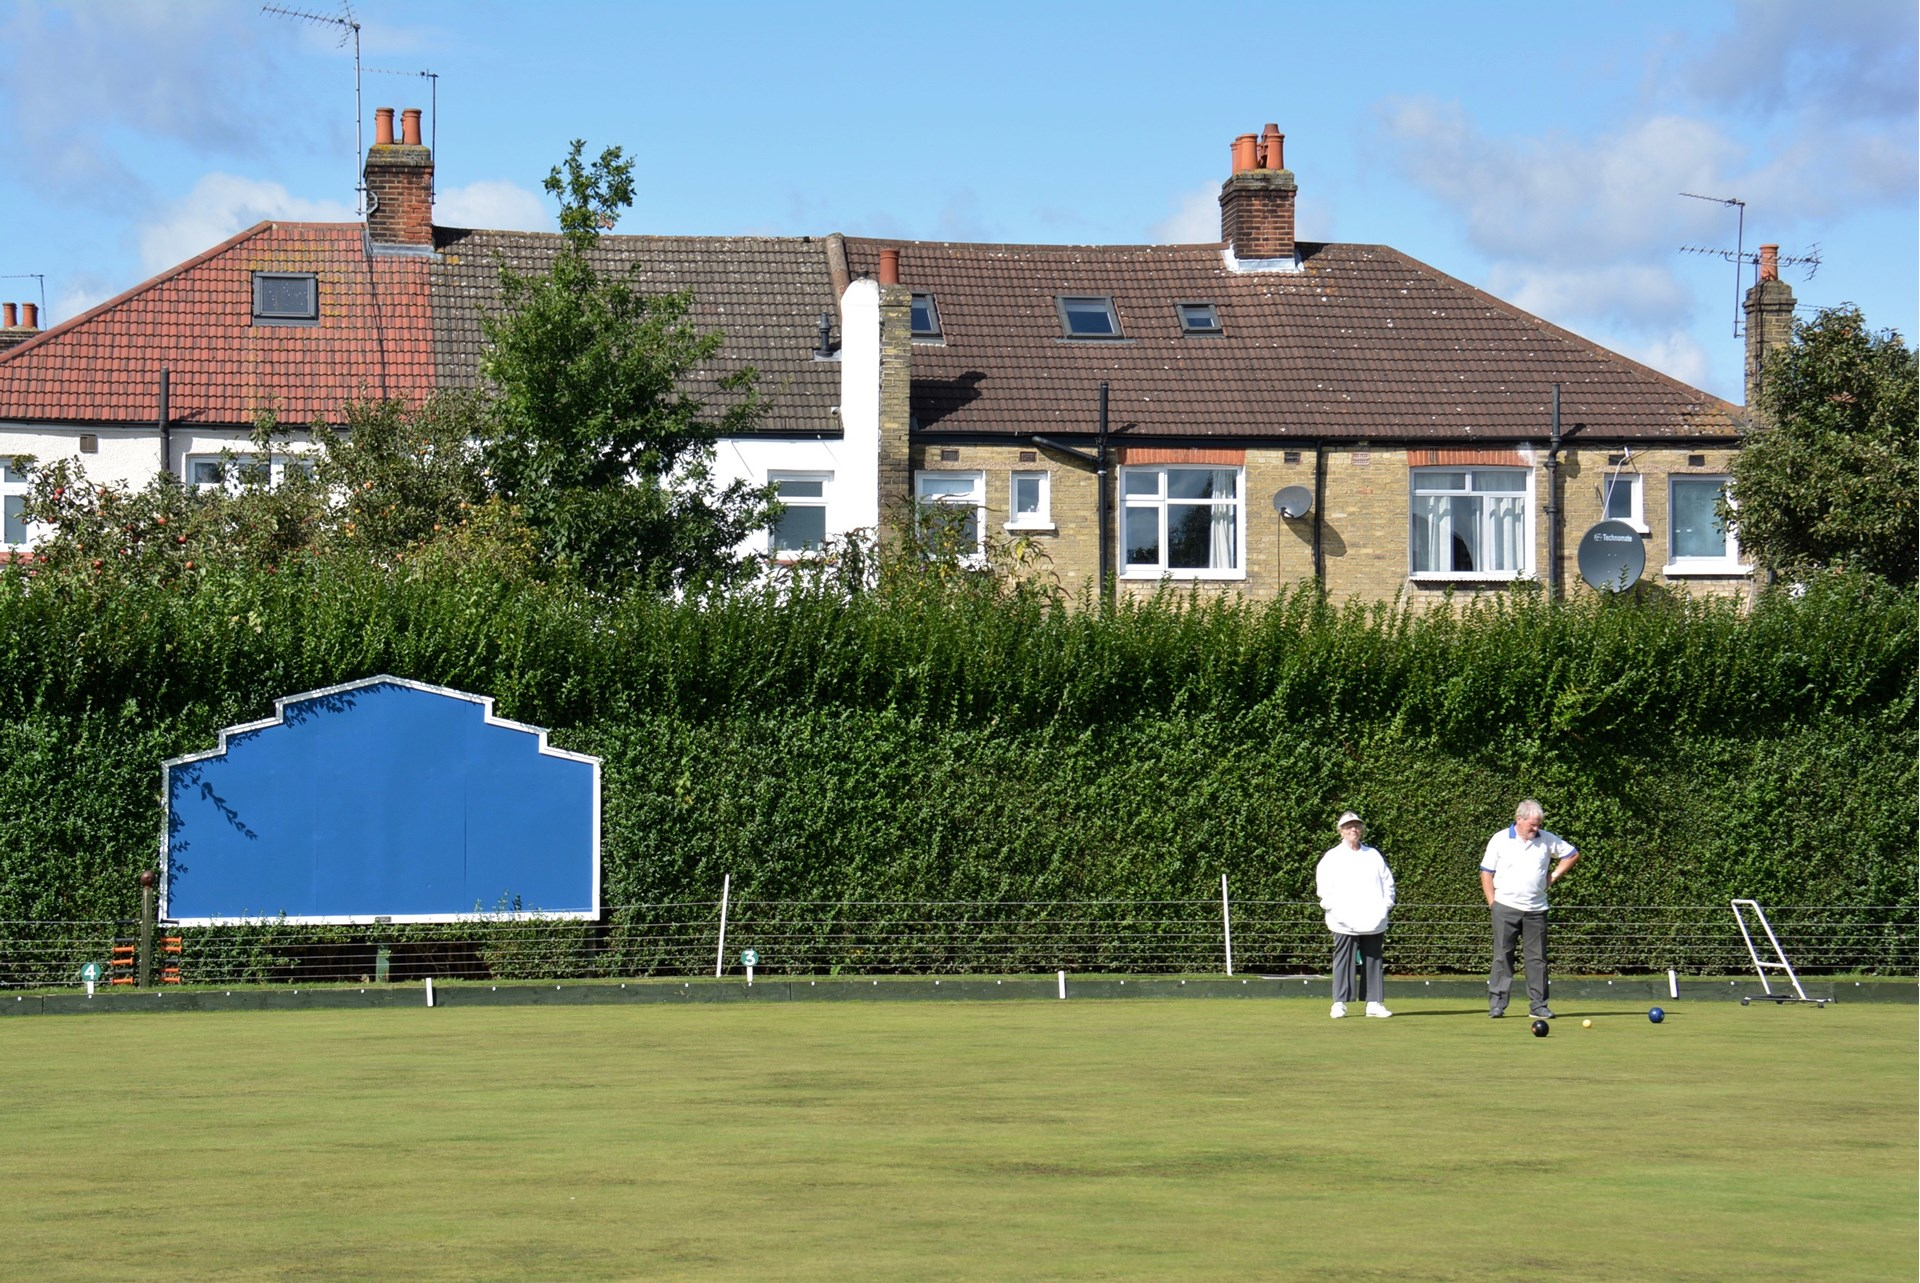 Broomfield Bowls Club Council Maintained Hedge